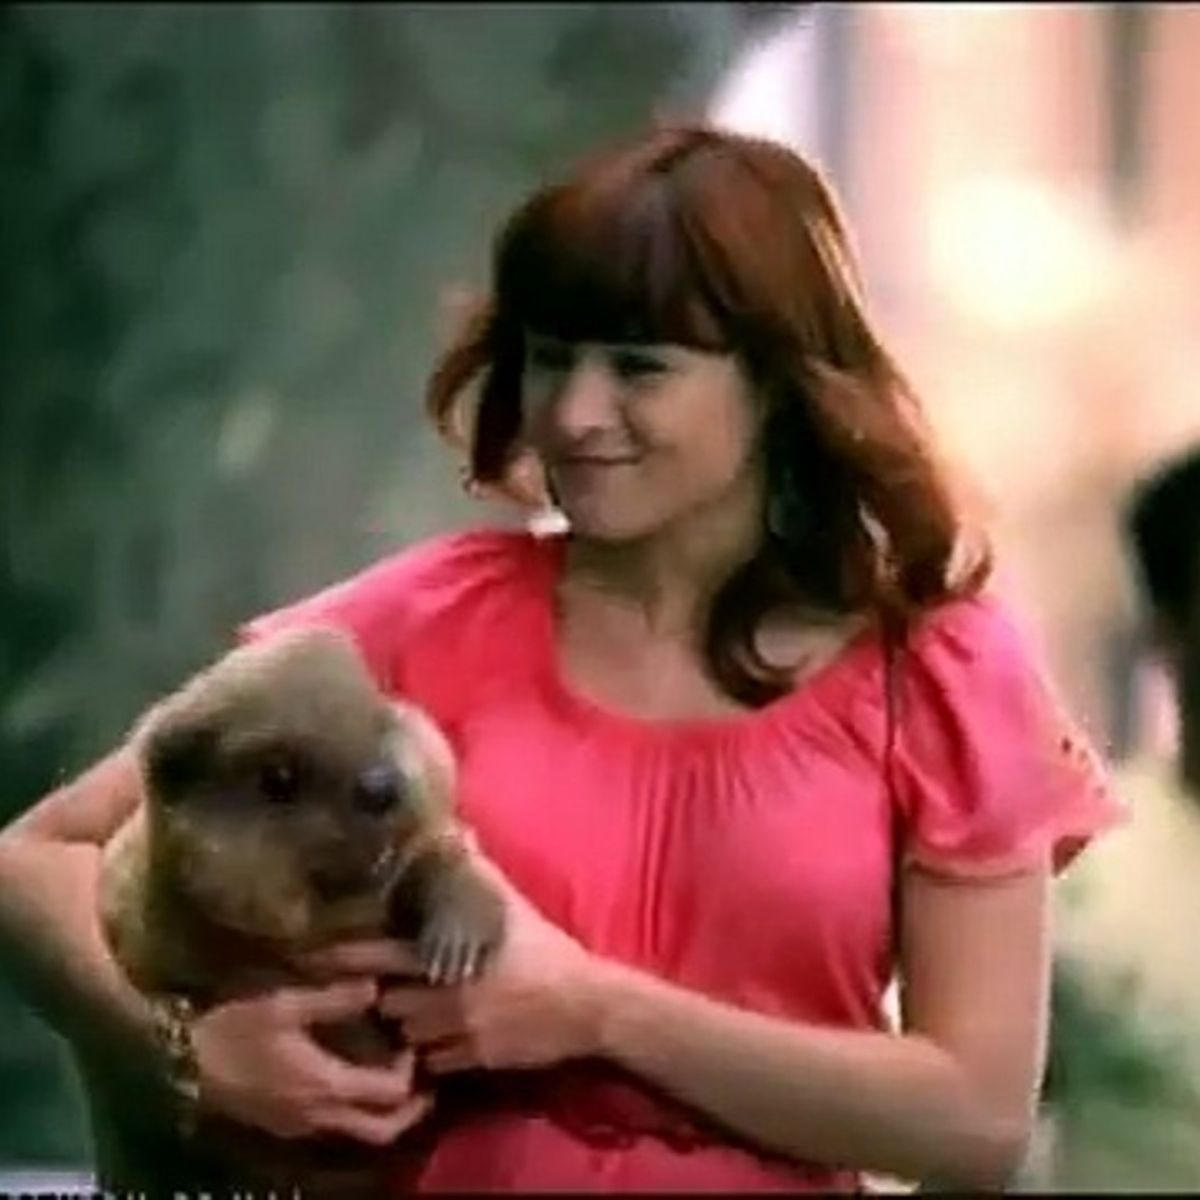 Beaver with woman: Kotex advertisement tampon